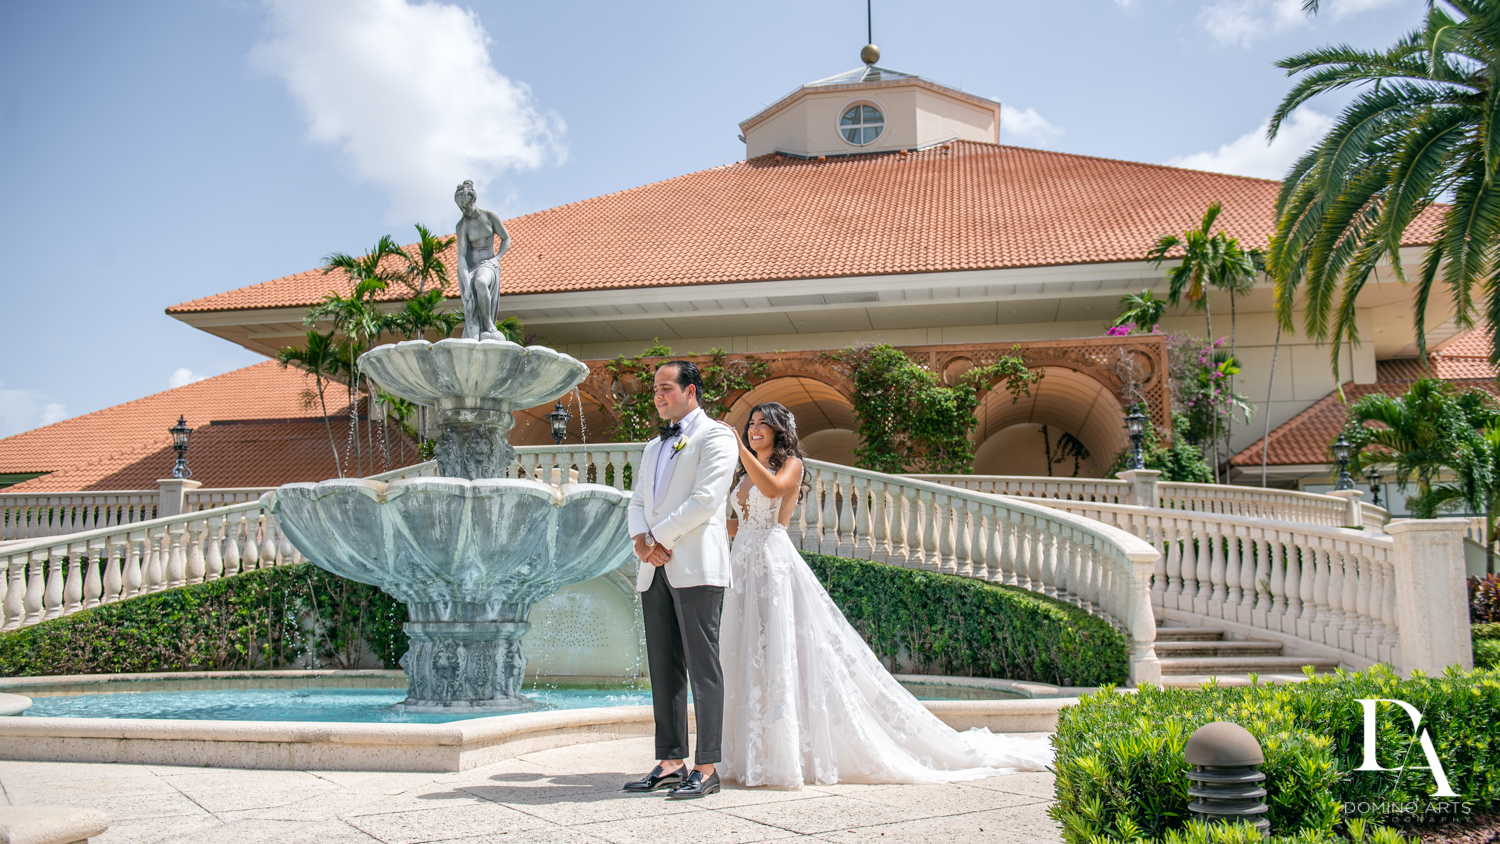 first look at Elegant Classy Wedding at Trump Doral by Domino Arts Photography